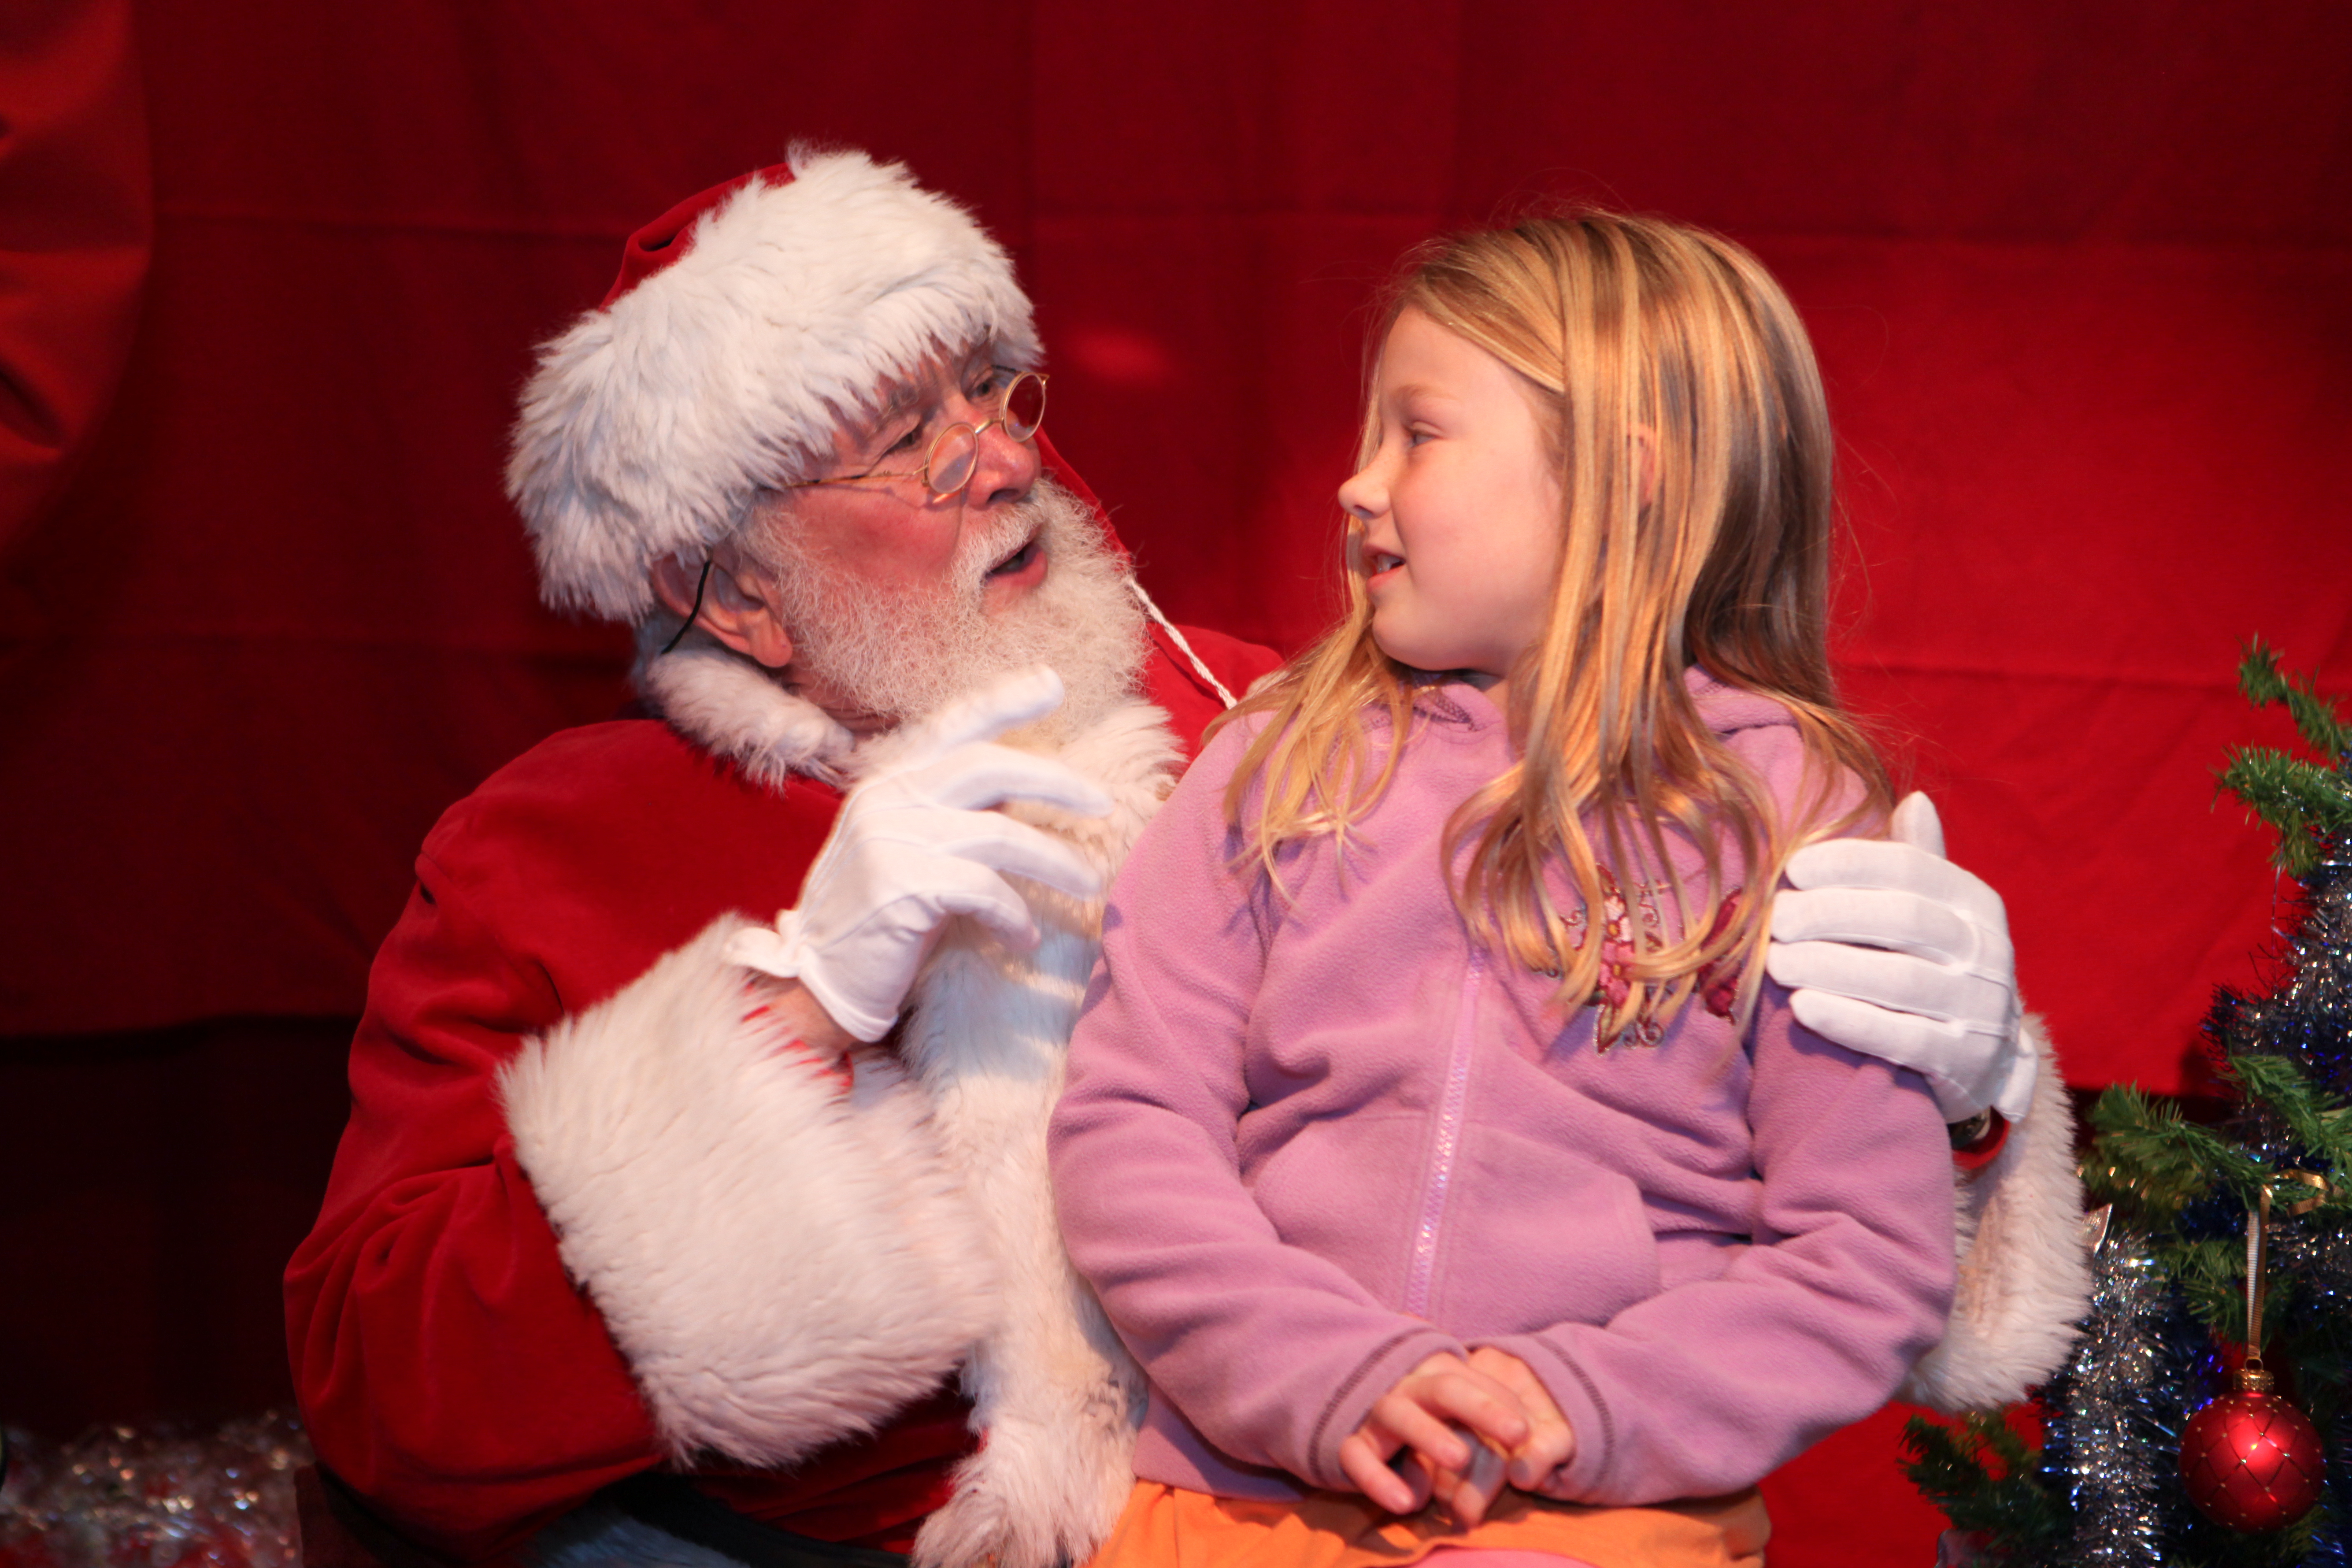 santa claus meets little girl - Santa Claus With Kids